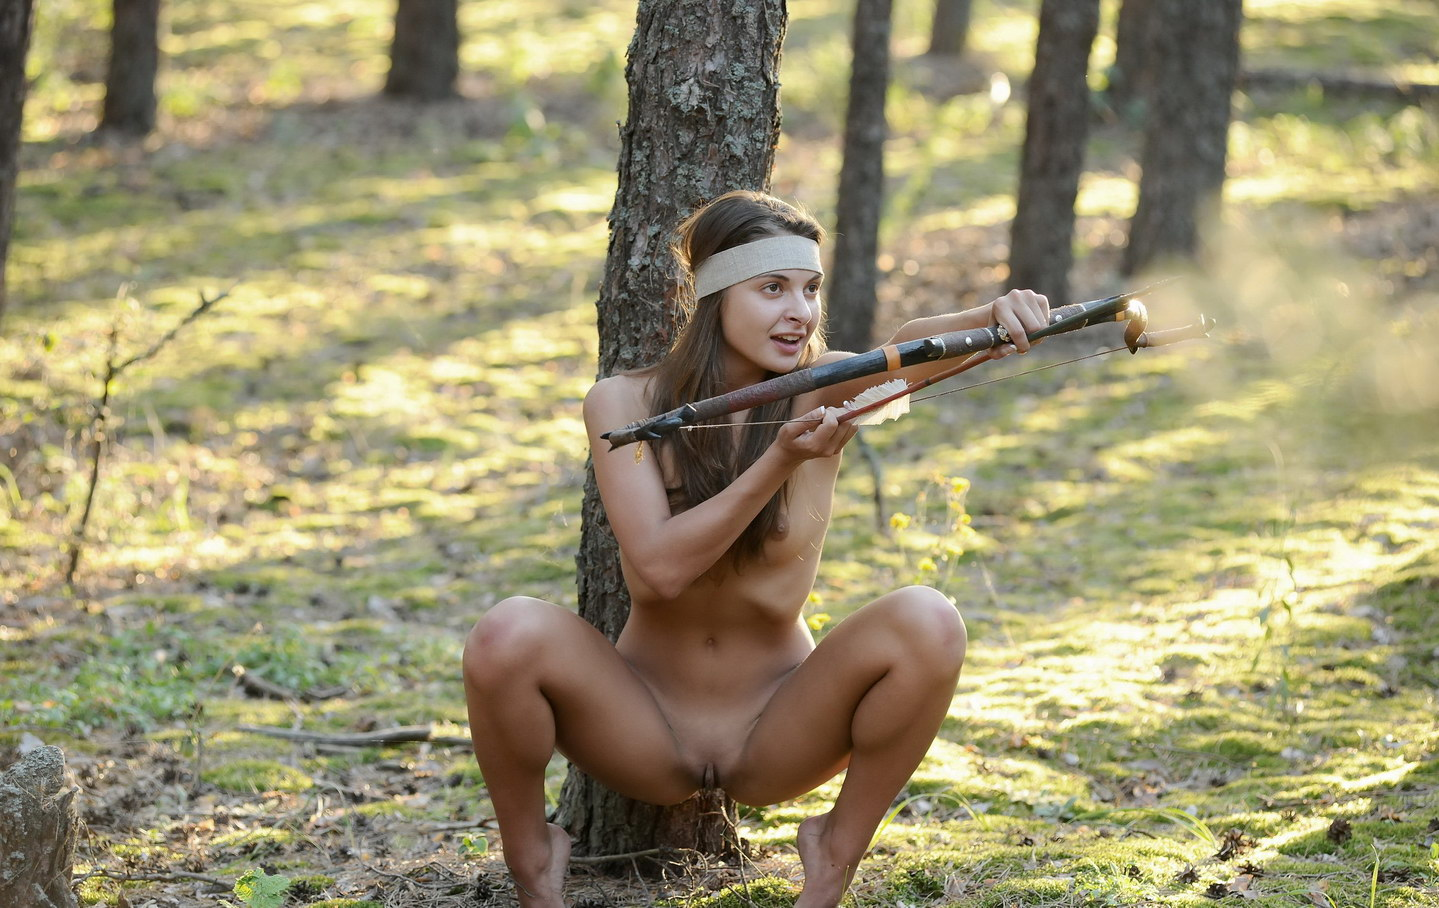 Nude female archery pics sexy tube